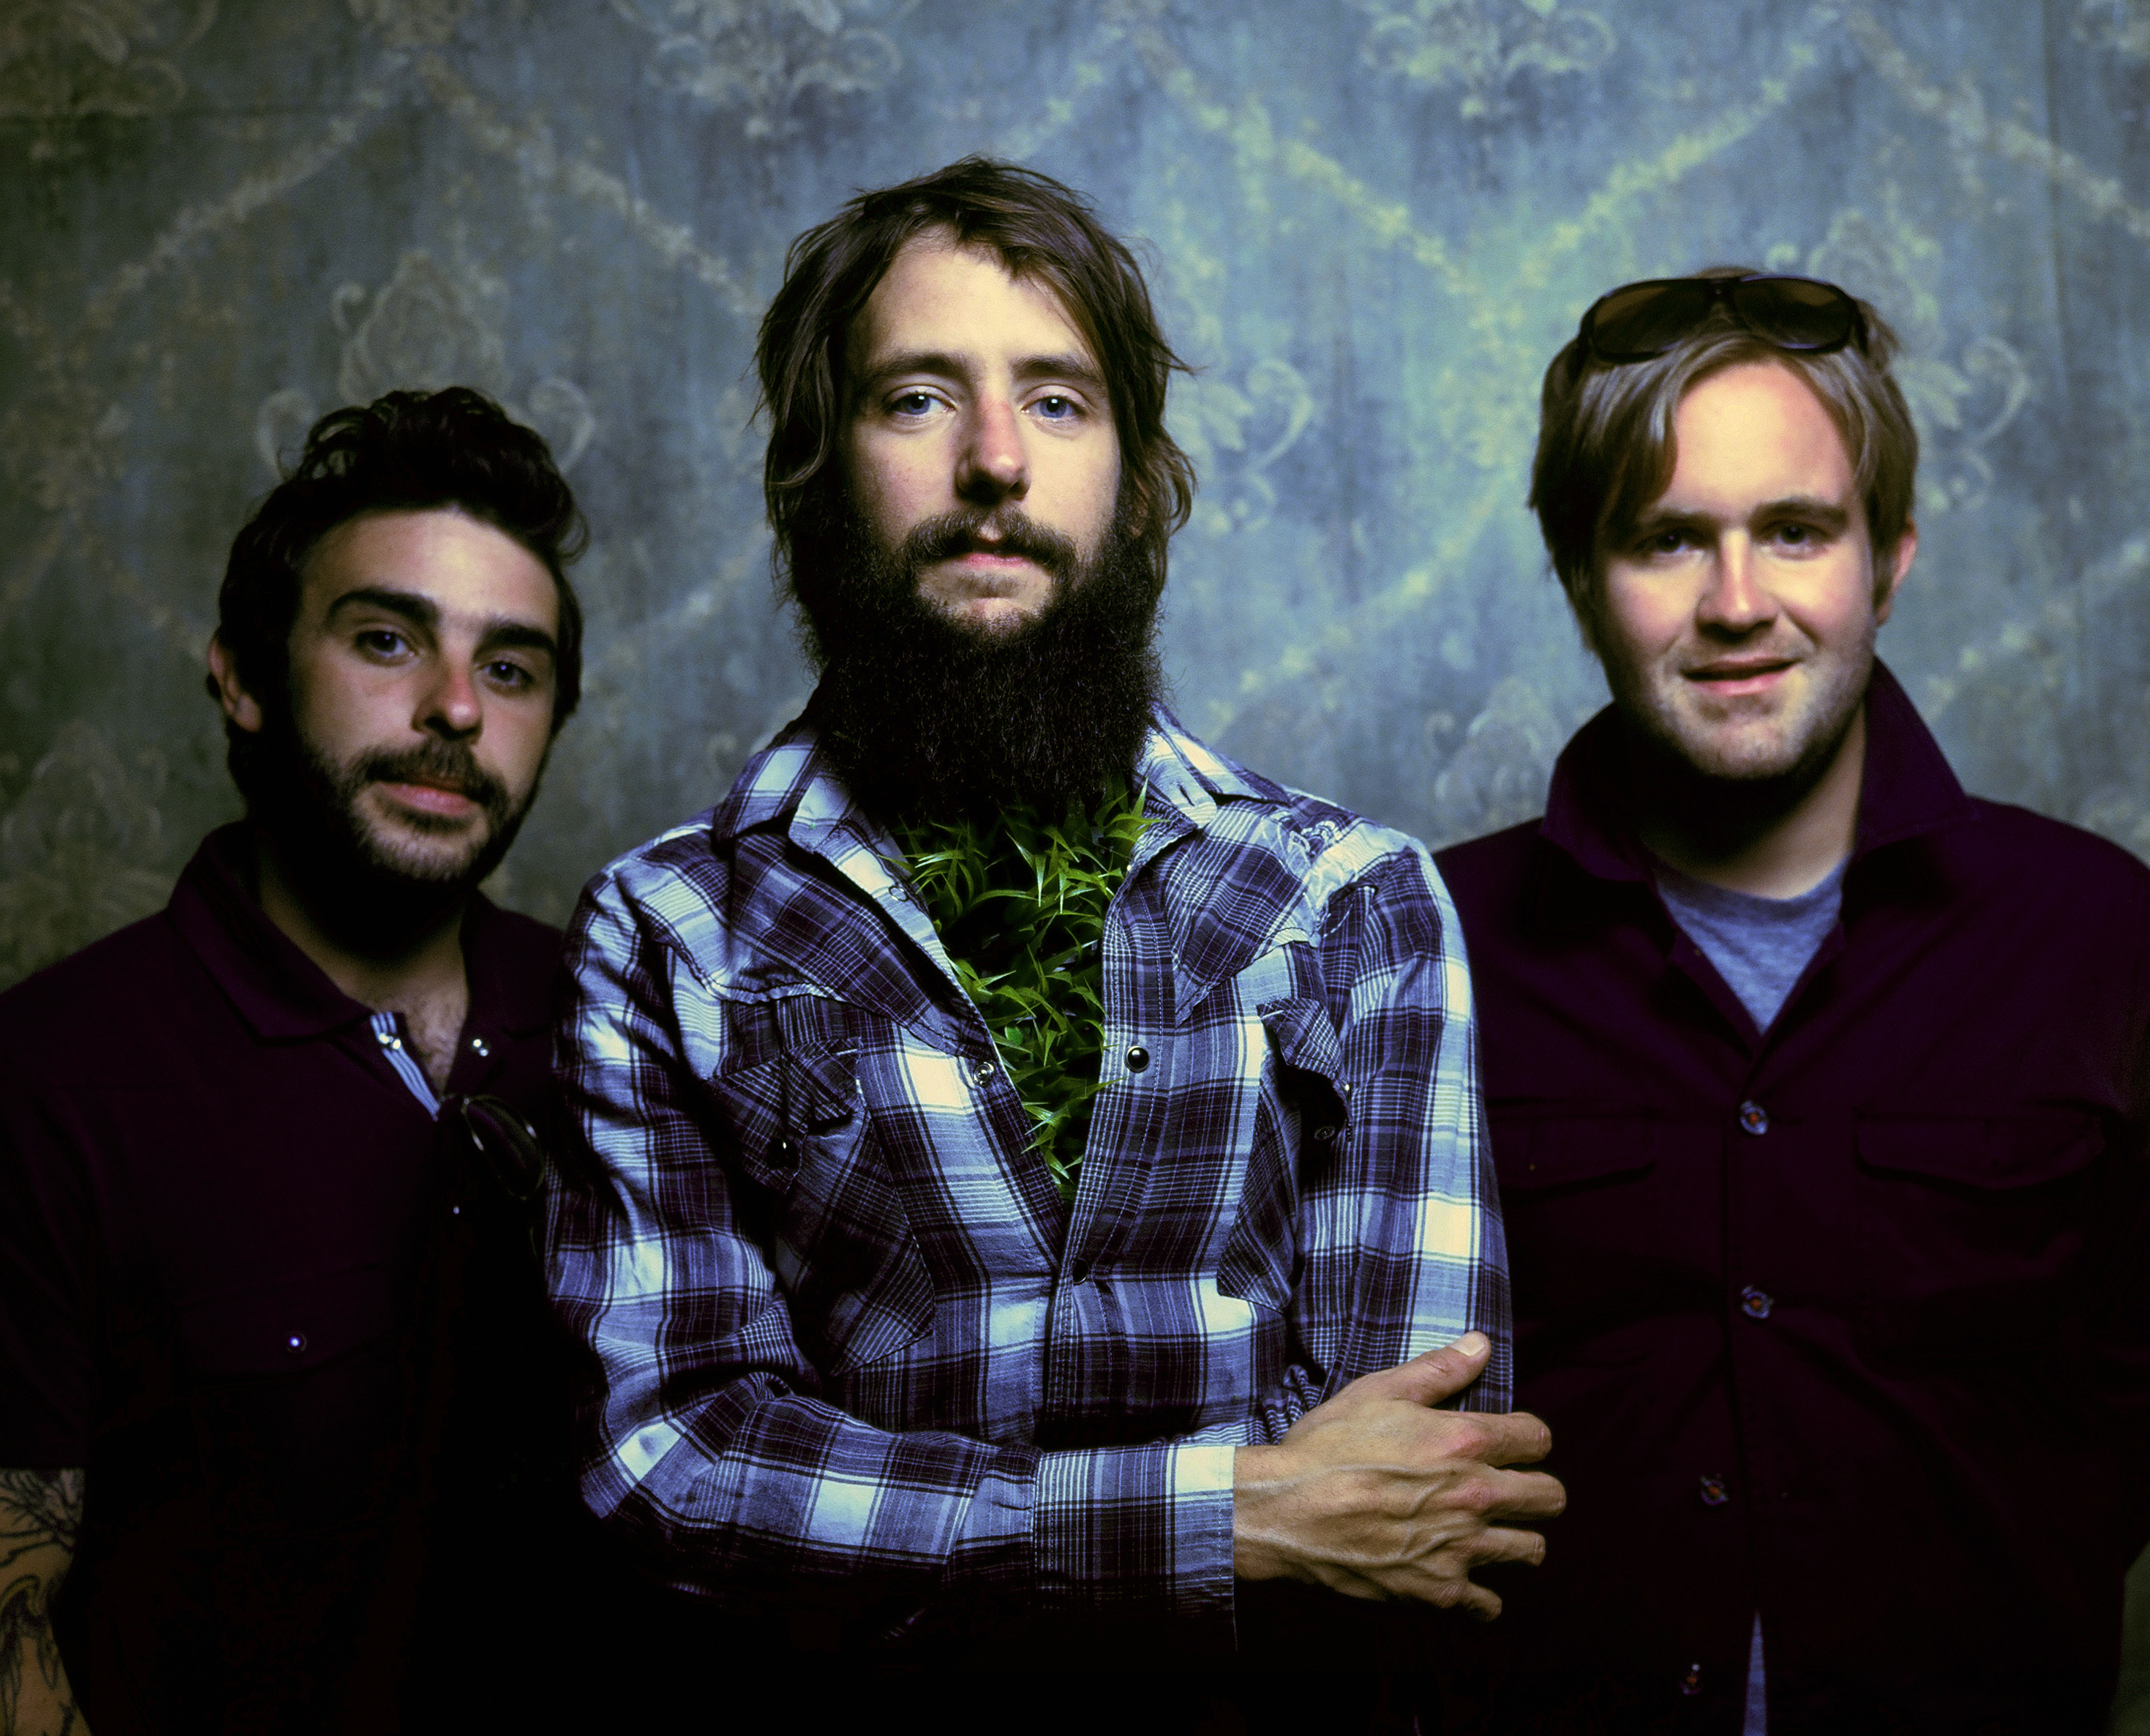 http://indiemuse.com/wp-content/uploads/2007/11/bandofhorses.jpg